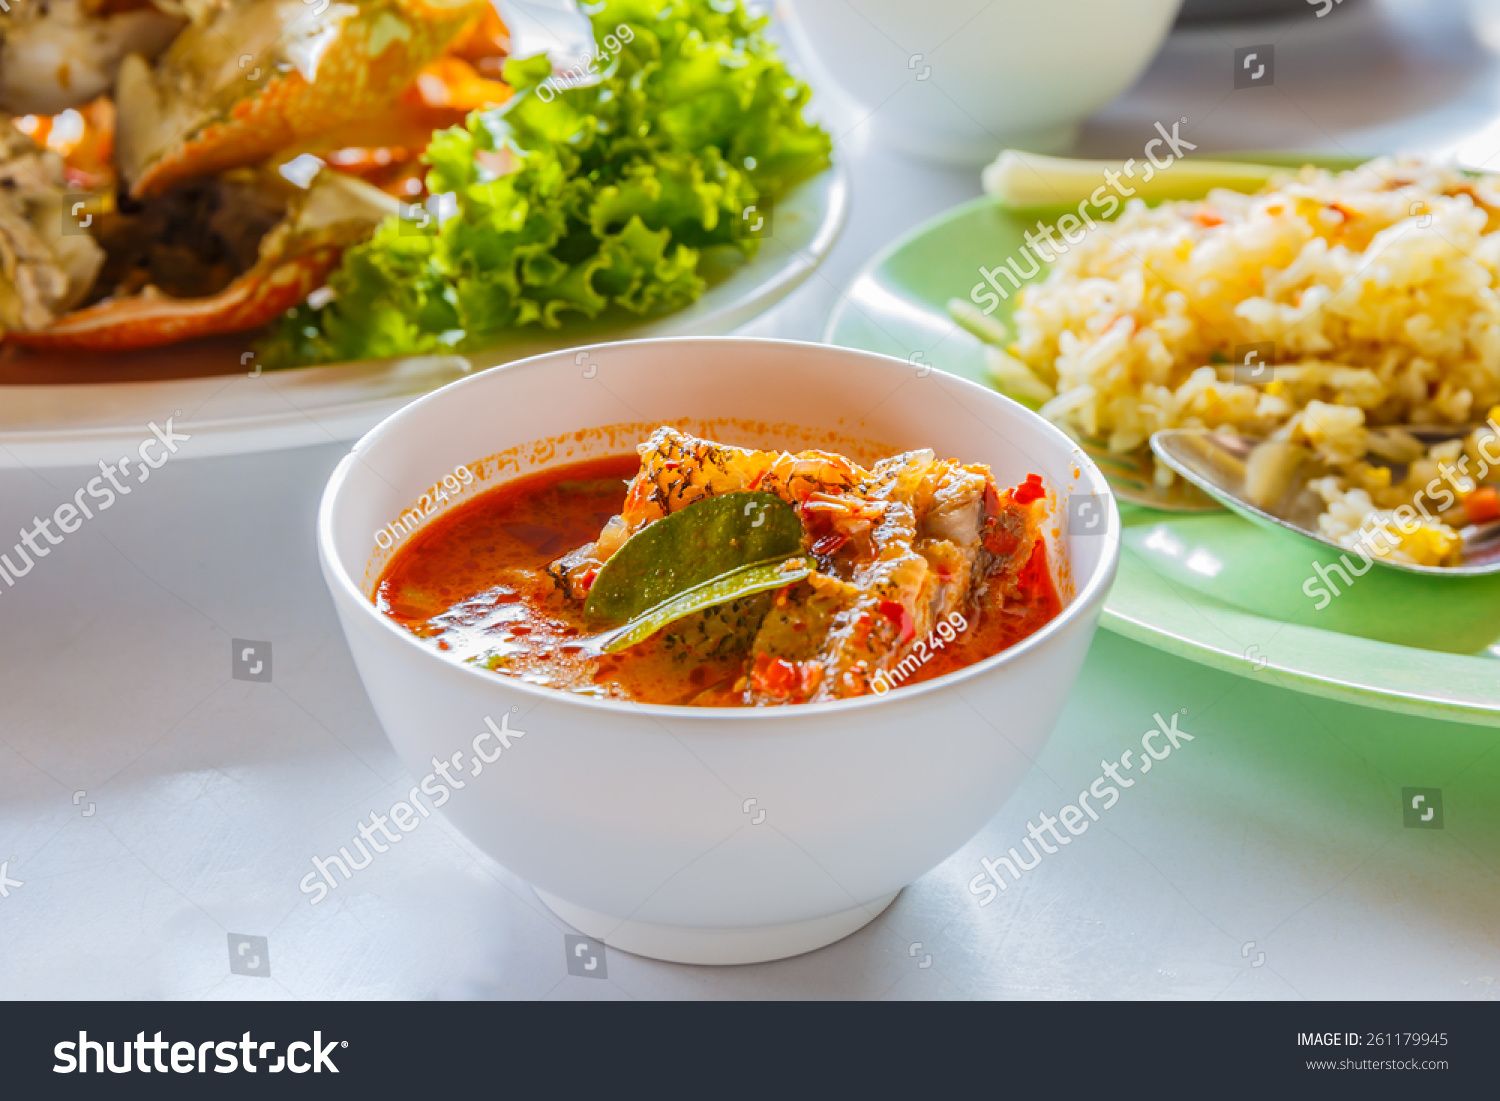 Spicy fish soup stock photo 261179945 shutterstock for Spicy fish soup